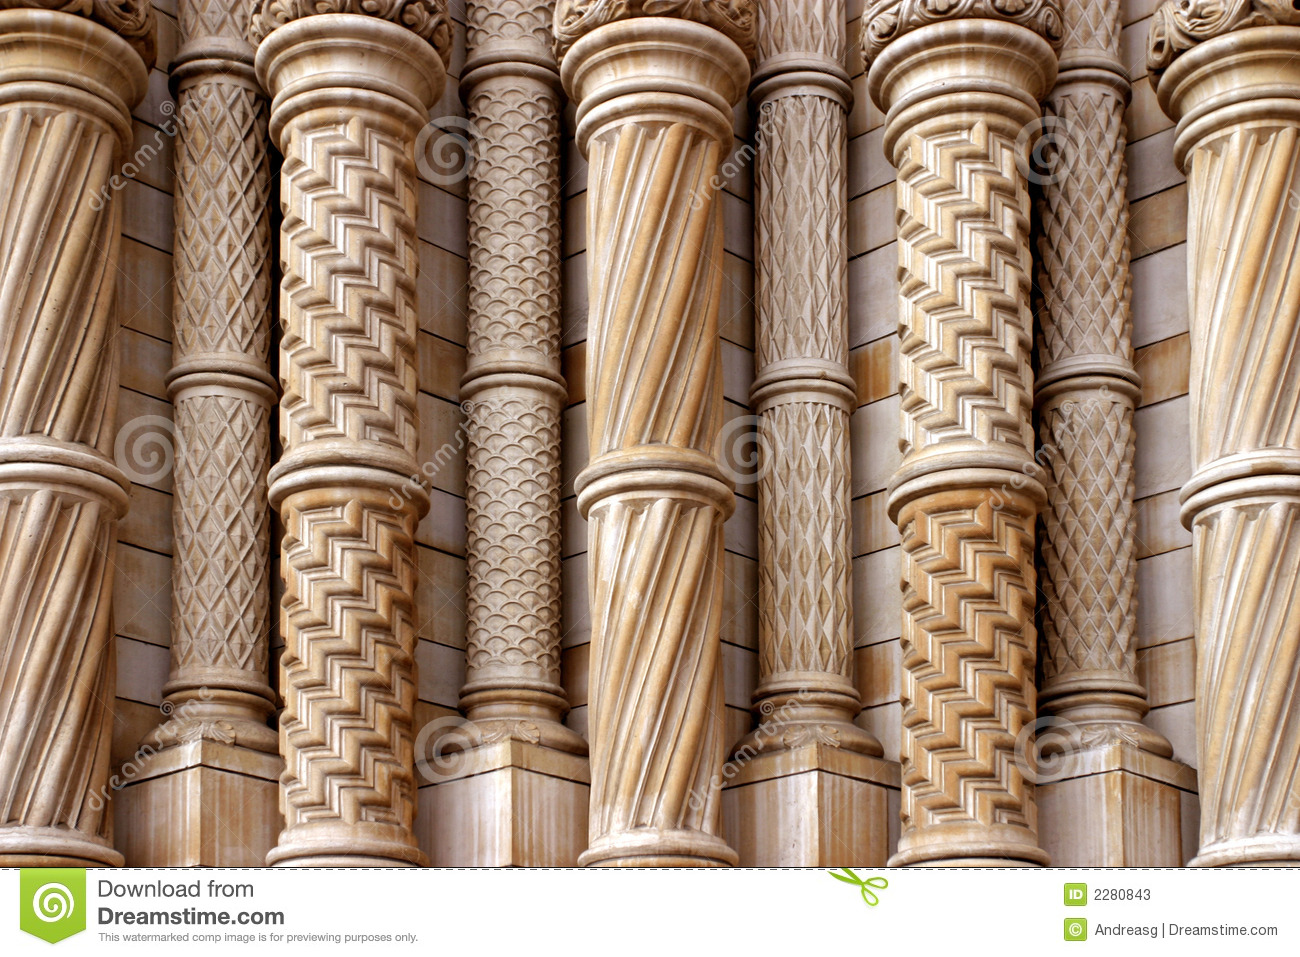 Stone Pillars And Columns : Patterned stone columns stock image of strength